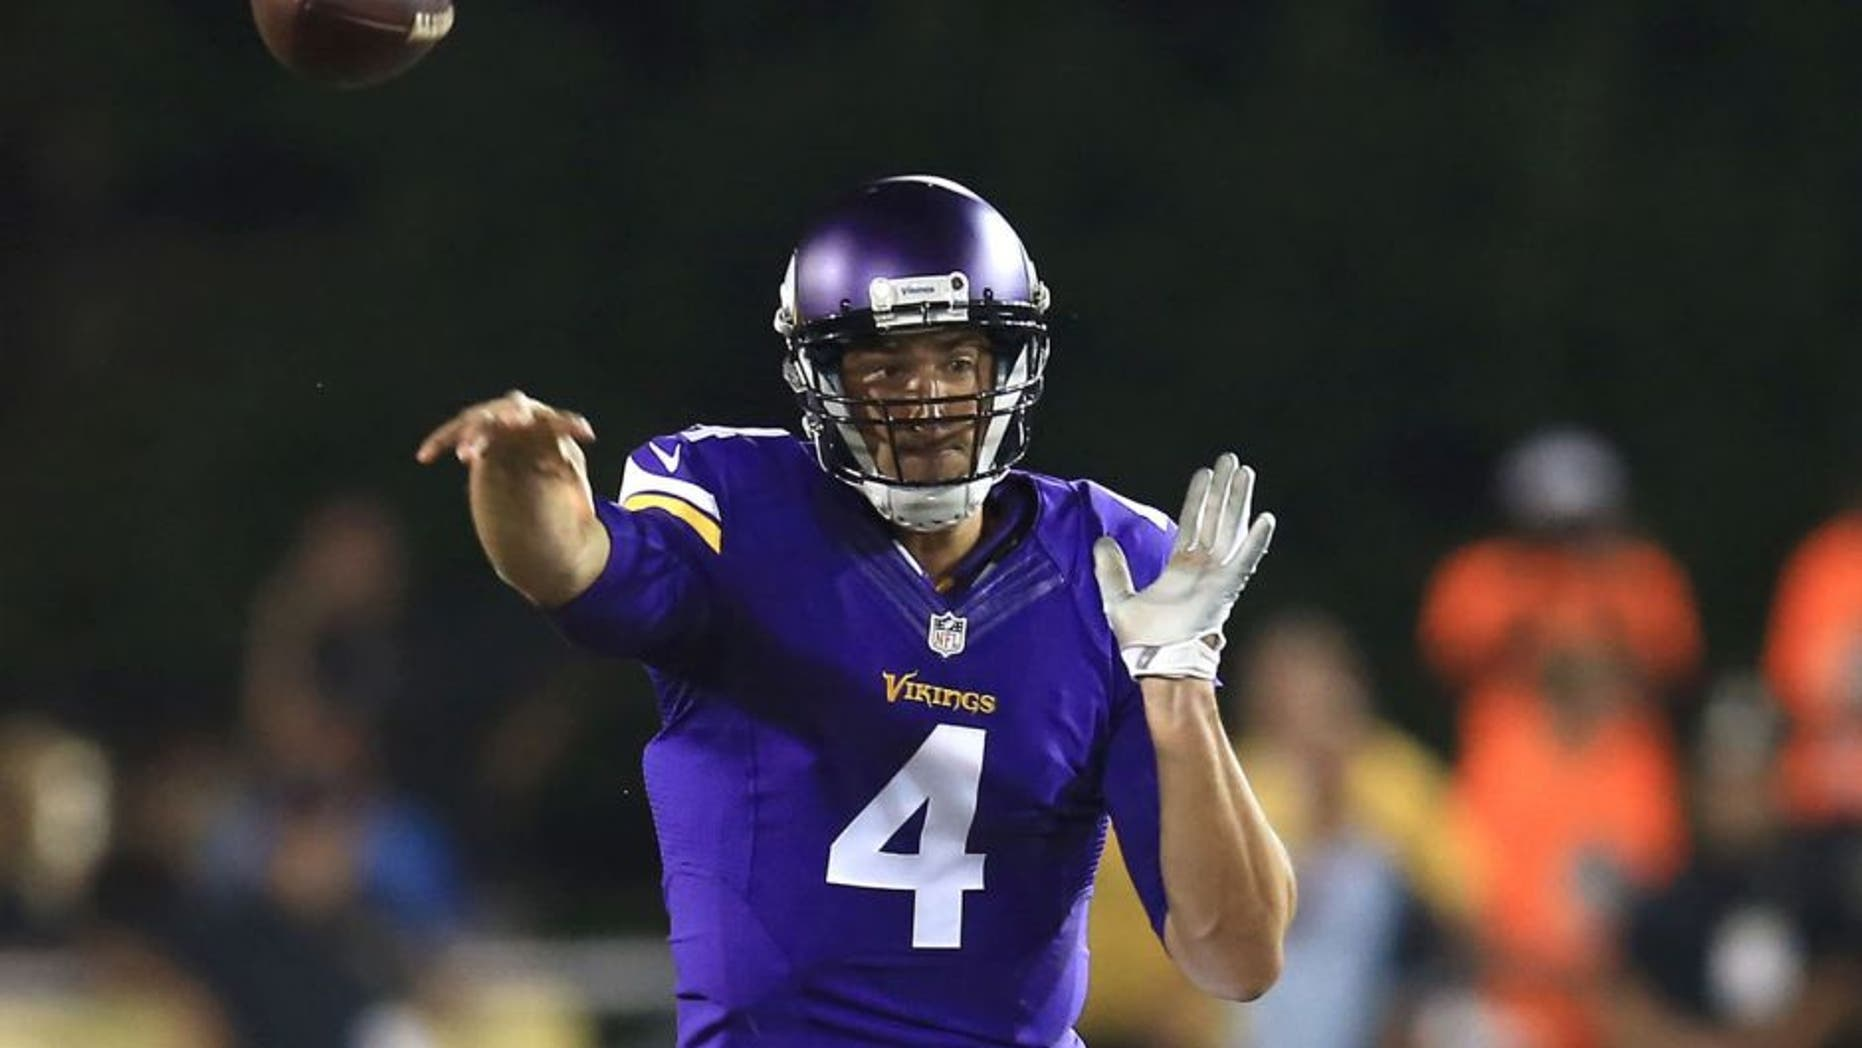 Minnesota Vikings quarterback Mike Kafka throws a pass during the second quarter against the Pittsburgh Steelers at Tom Benson Hall of Fame Stadium in Canton, Ohio, on Sunday, August 9, 2015.